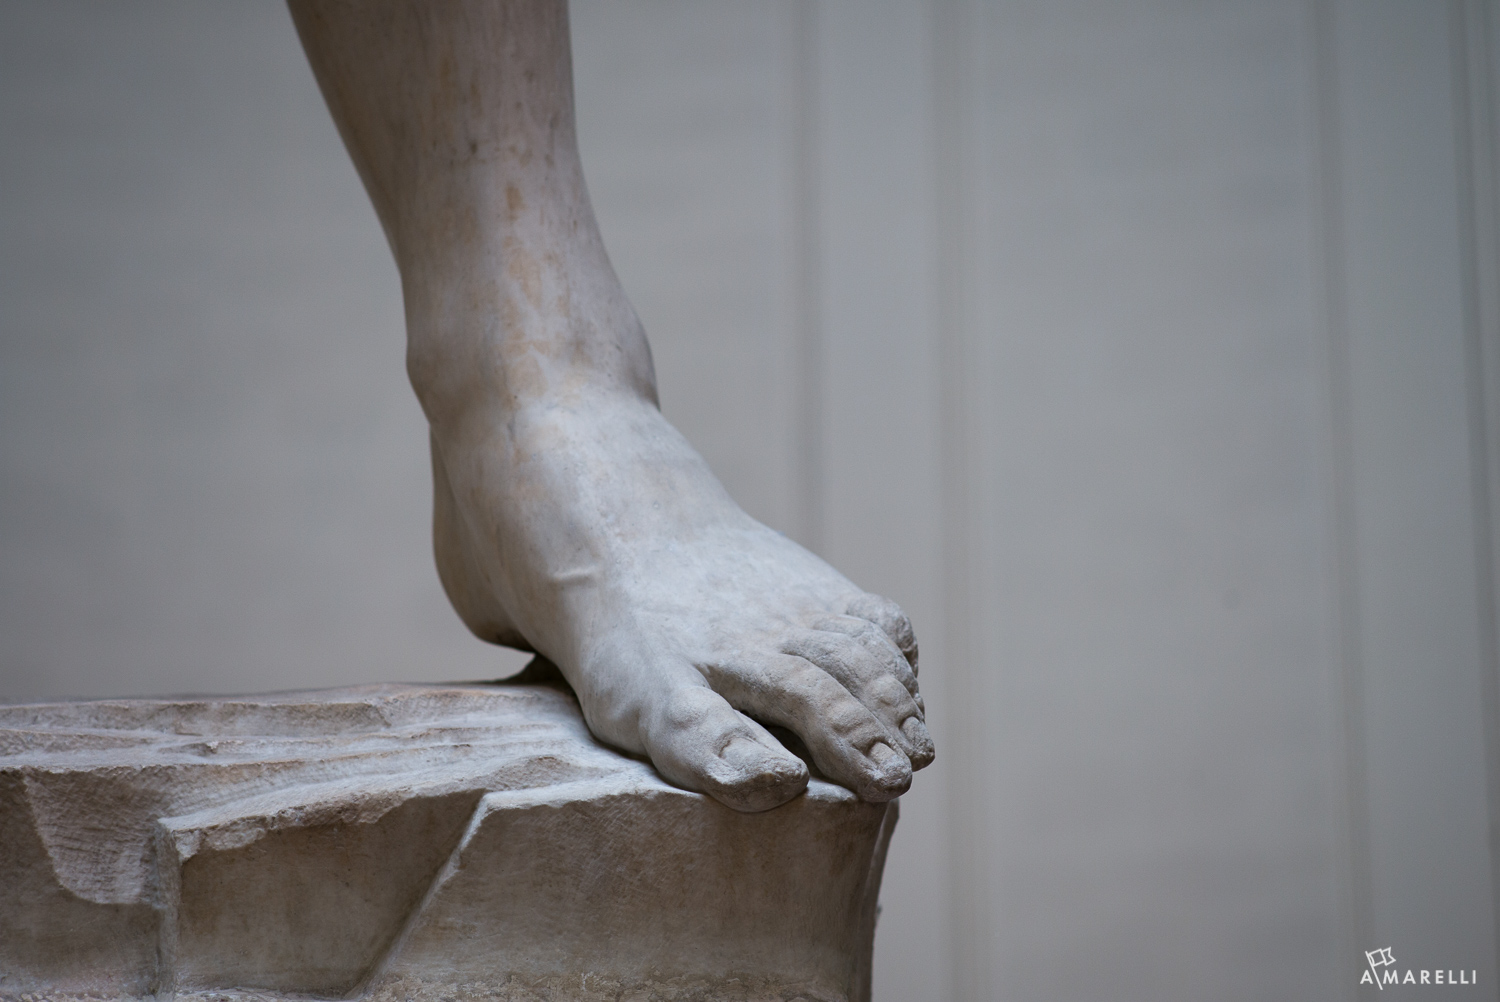 4-david-detail-michelangelo-adam-marelli